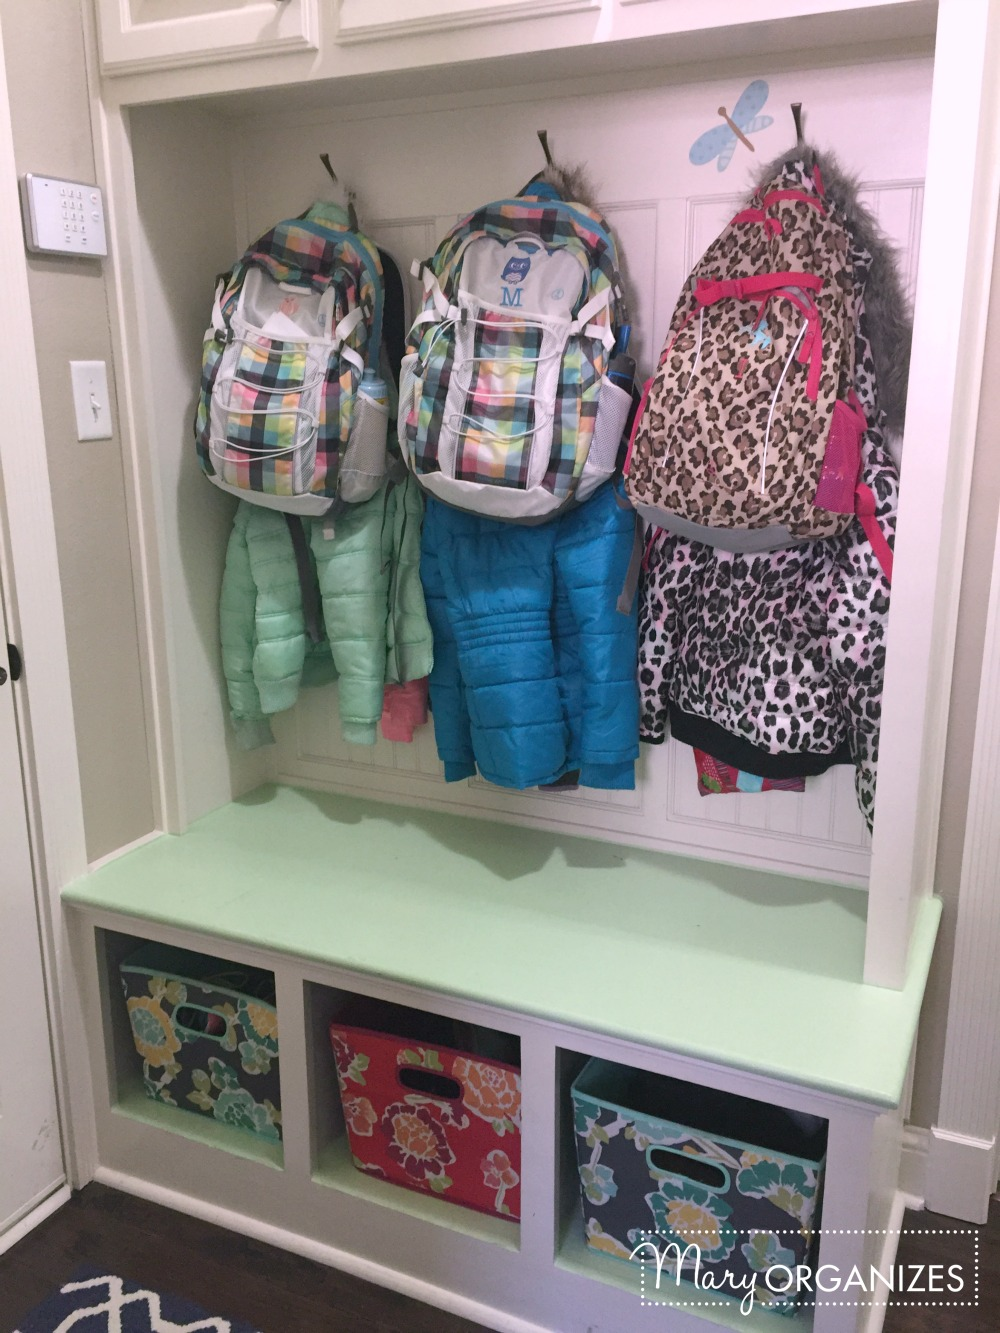 Mary Organizes - Coat and backpack hooks